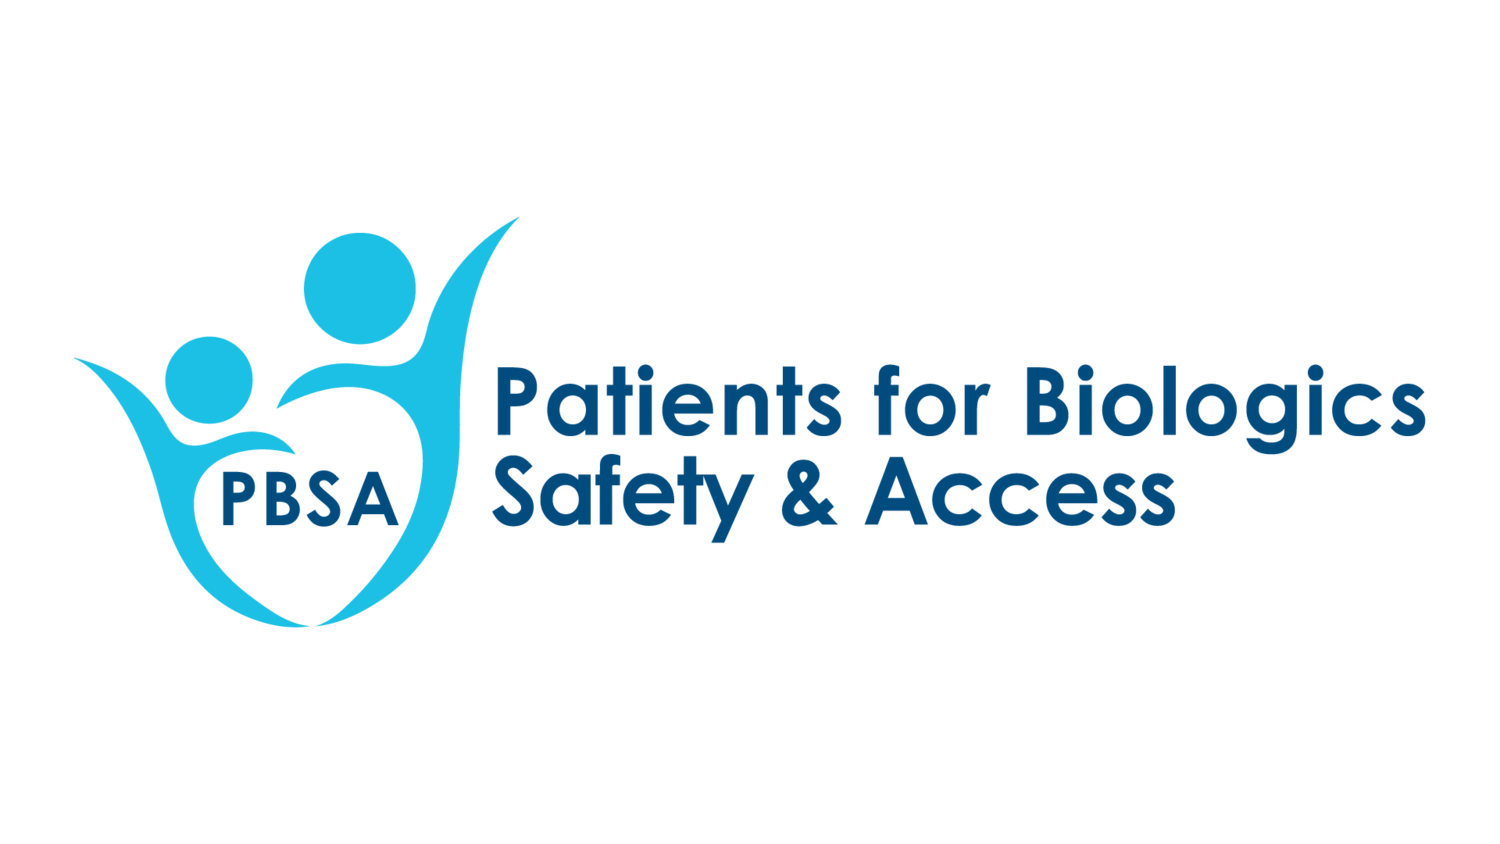 Patients for Biologics Safety & Access